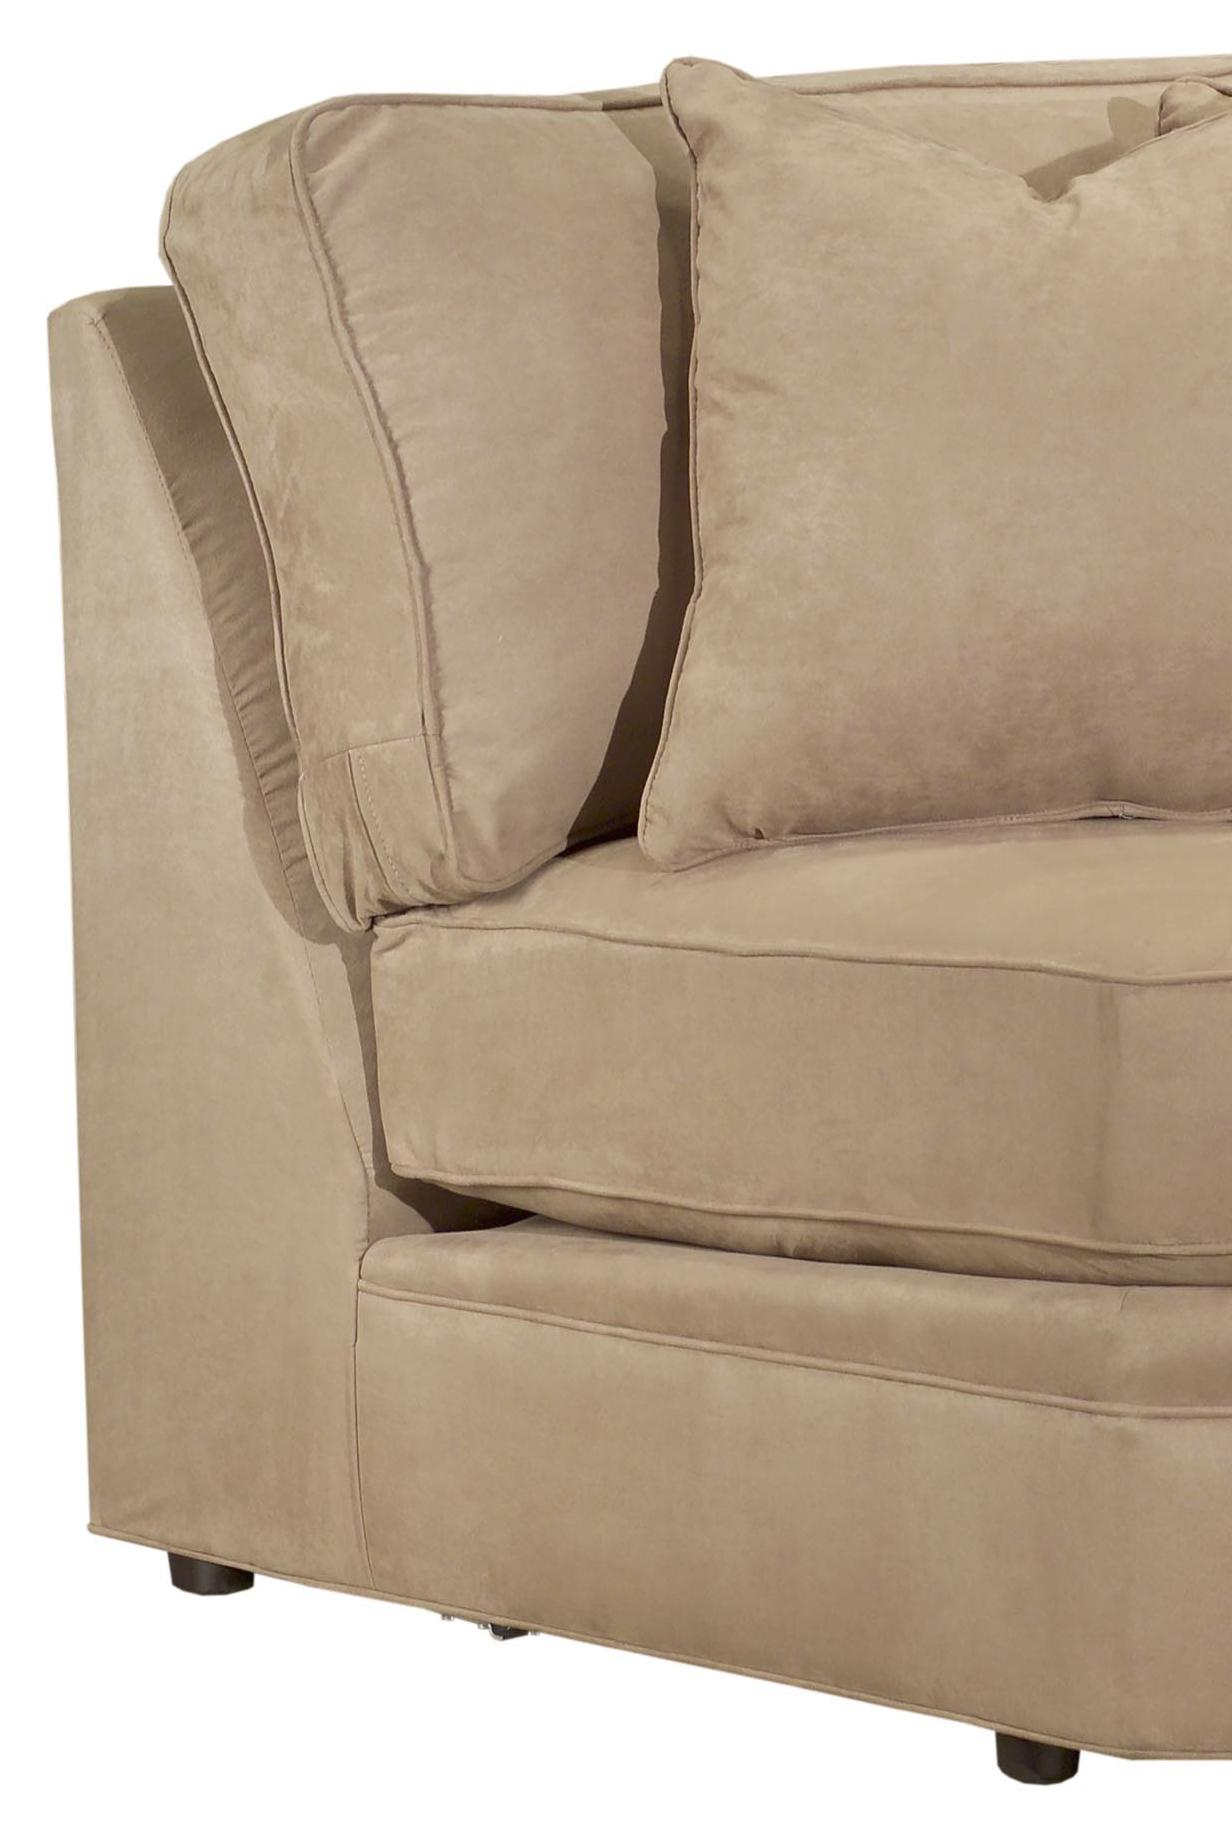 Veronica sof by Broyhill Furniture Baer s Furniture Broyhill